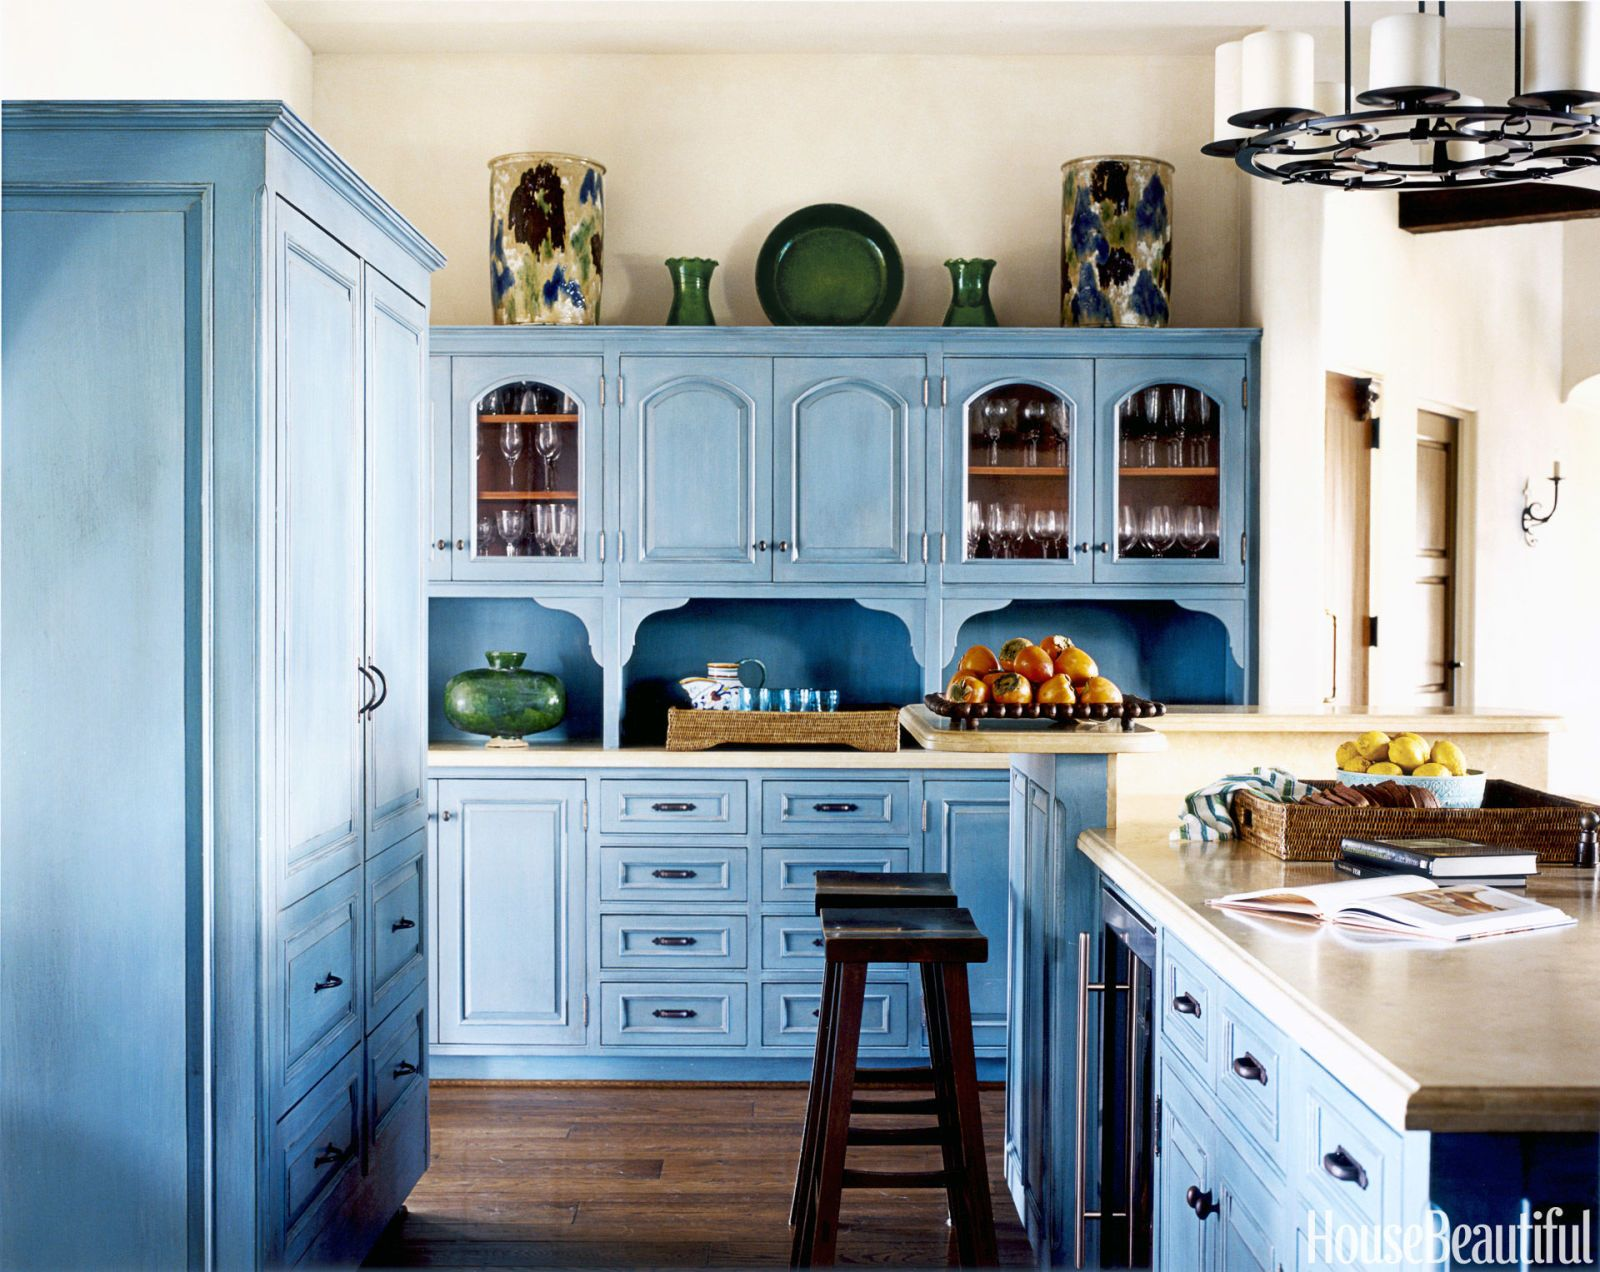 50 Kitchen Cabinet Ideas | Montecito california, Countertops and ...